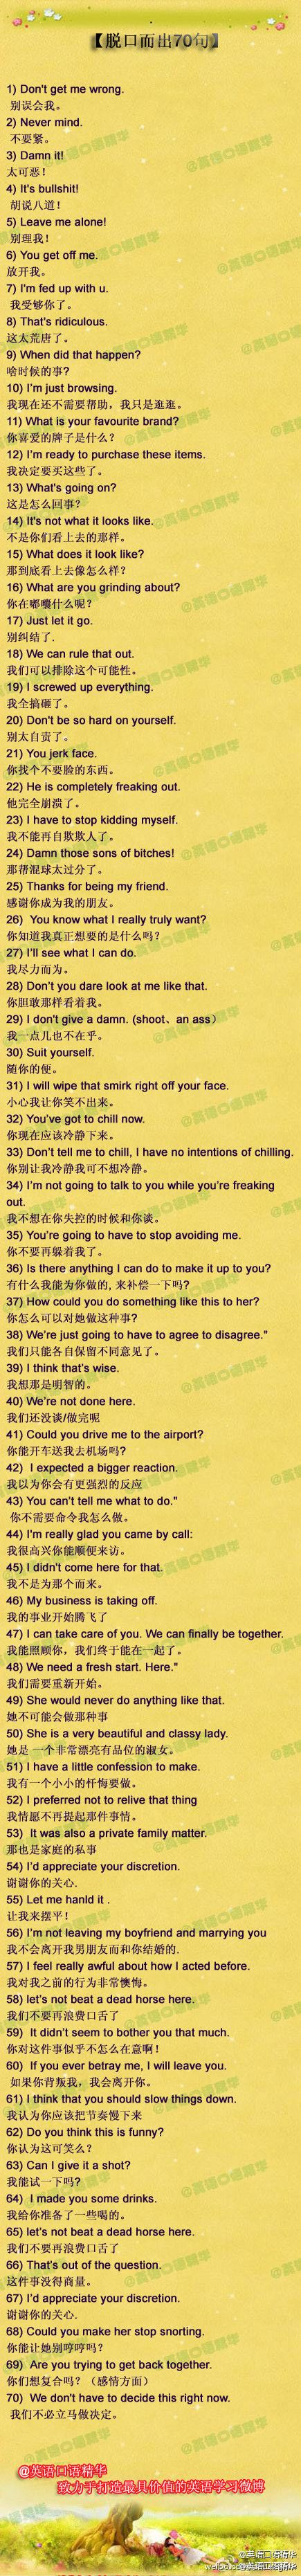 English and Chinese sentences  #Courconnect #Languages #Courses